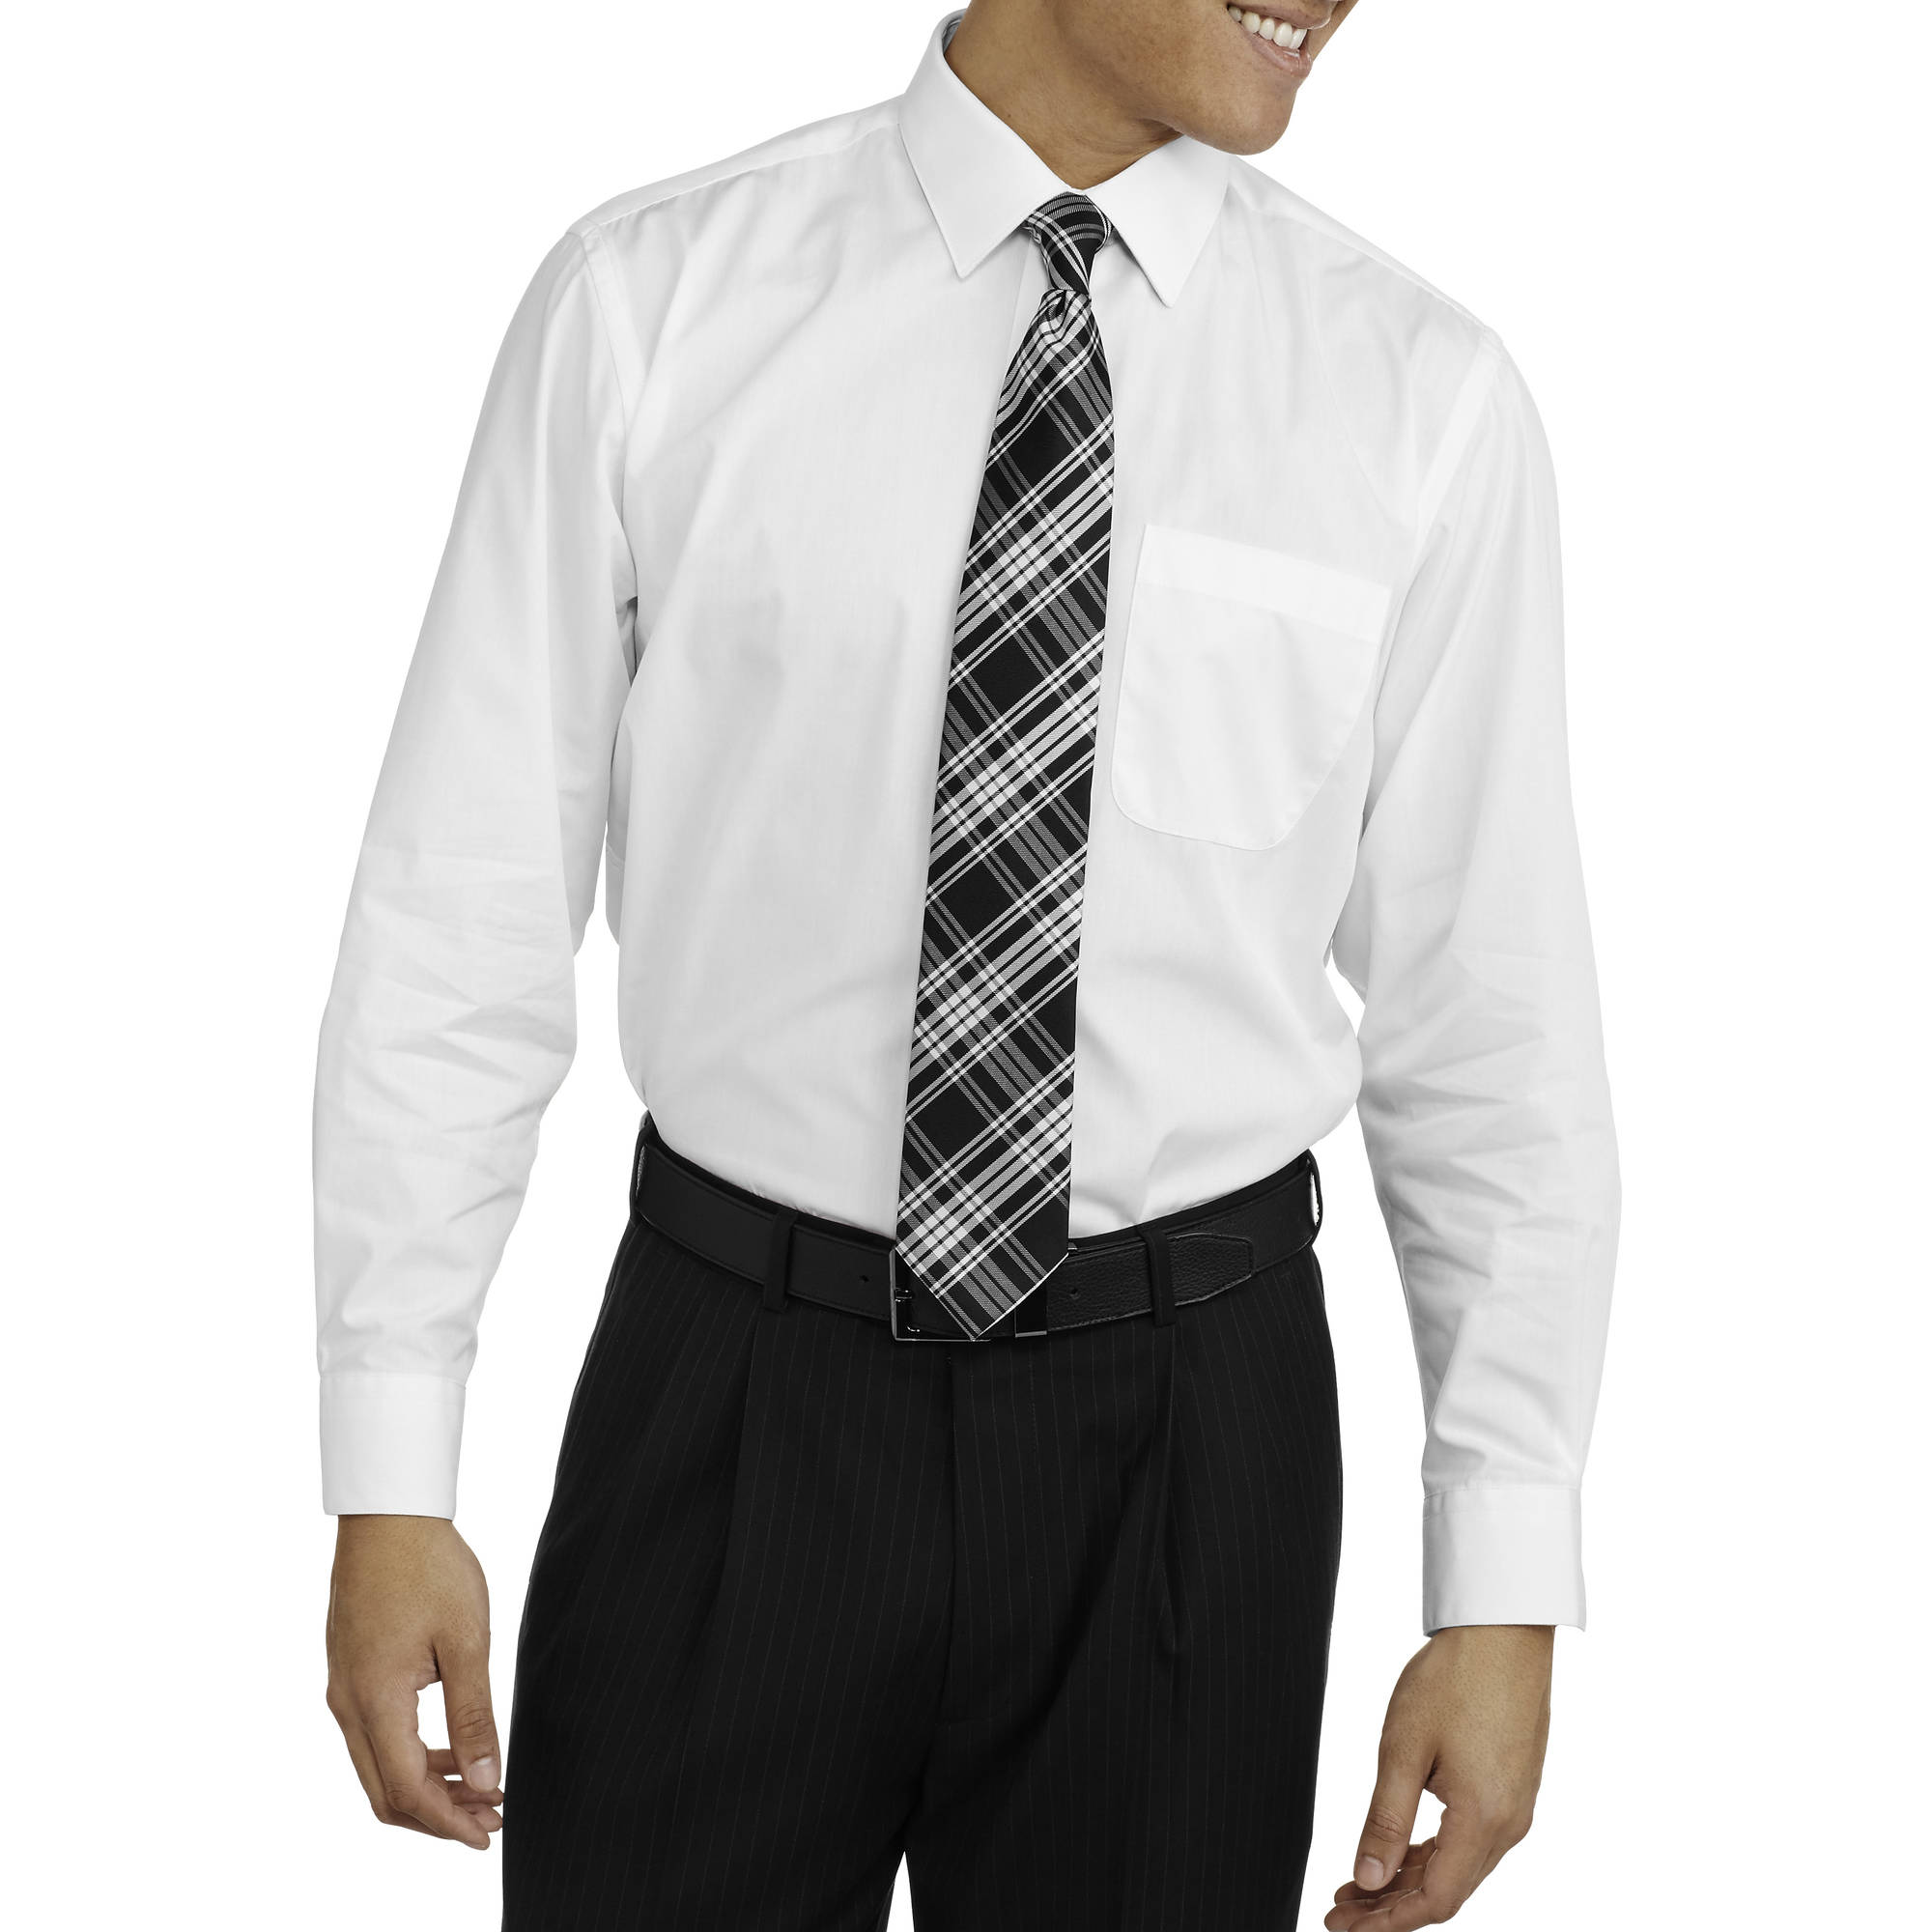 Men's Packaged Long Sleeve Dress Shirt and Tie Set